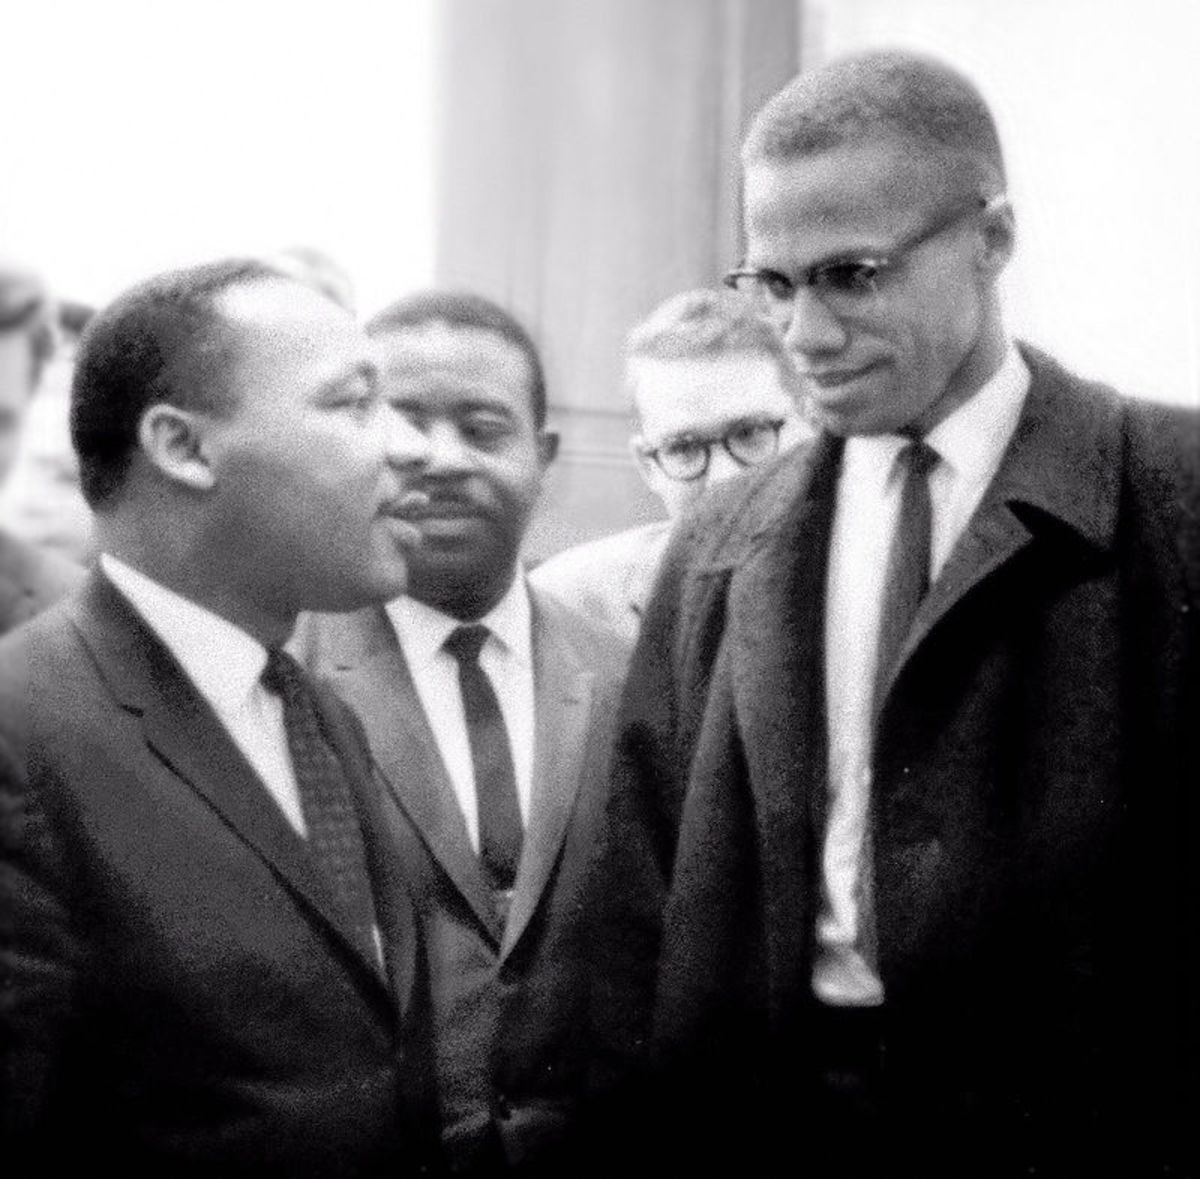 Malcolm X's and Martin Luther King Jr met together only once.  The meeting took place on March 26, 1964 and was very brief, barely long enough for photos to be taken.  It occurred in Washington during the Senate's debate on the Civil Rights bill.